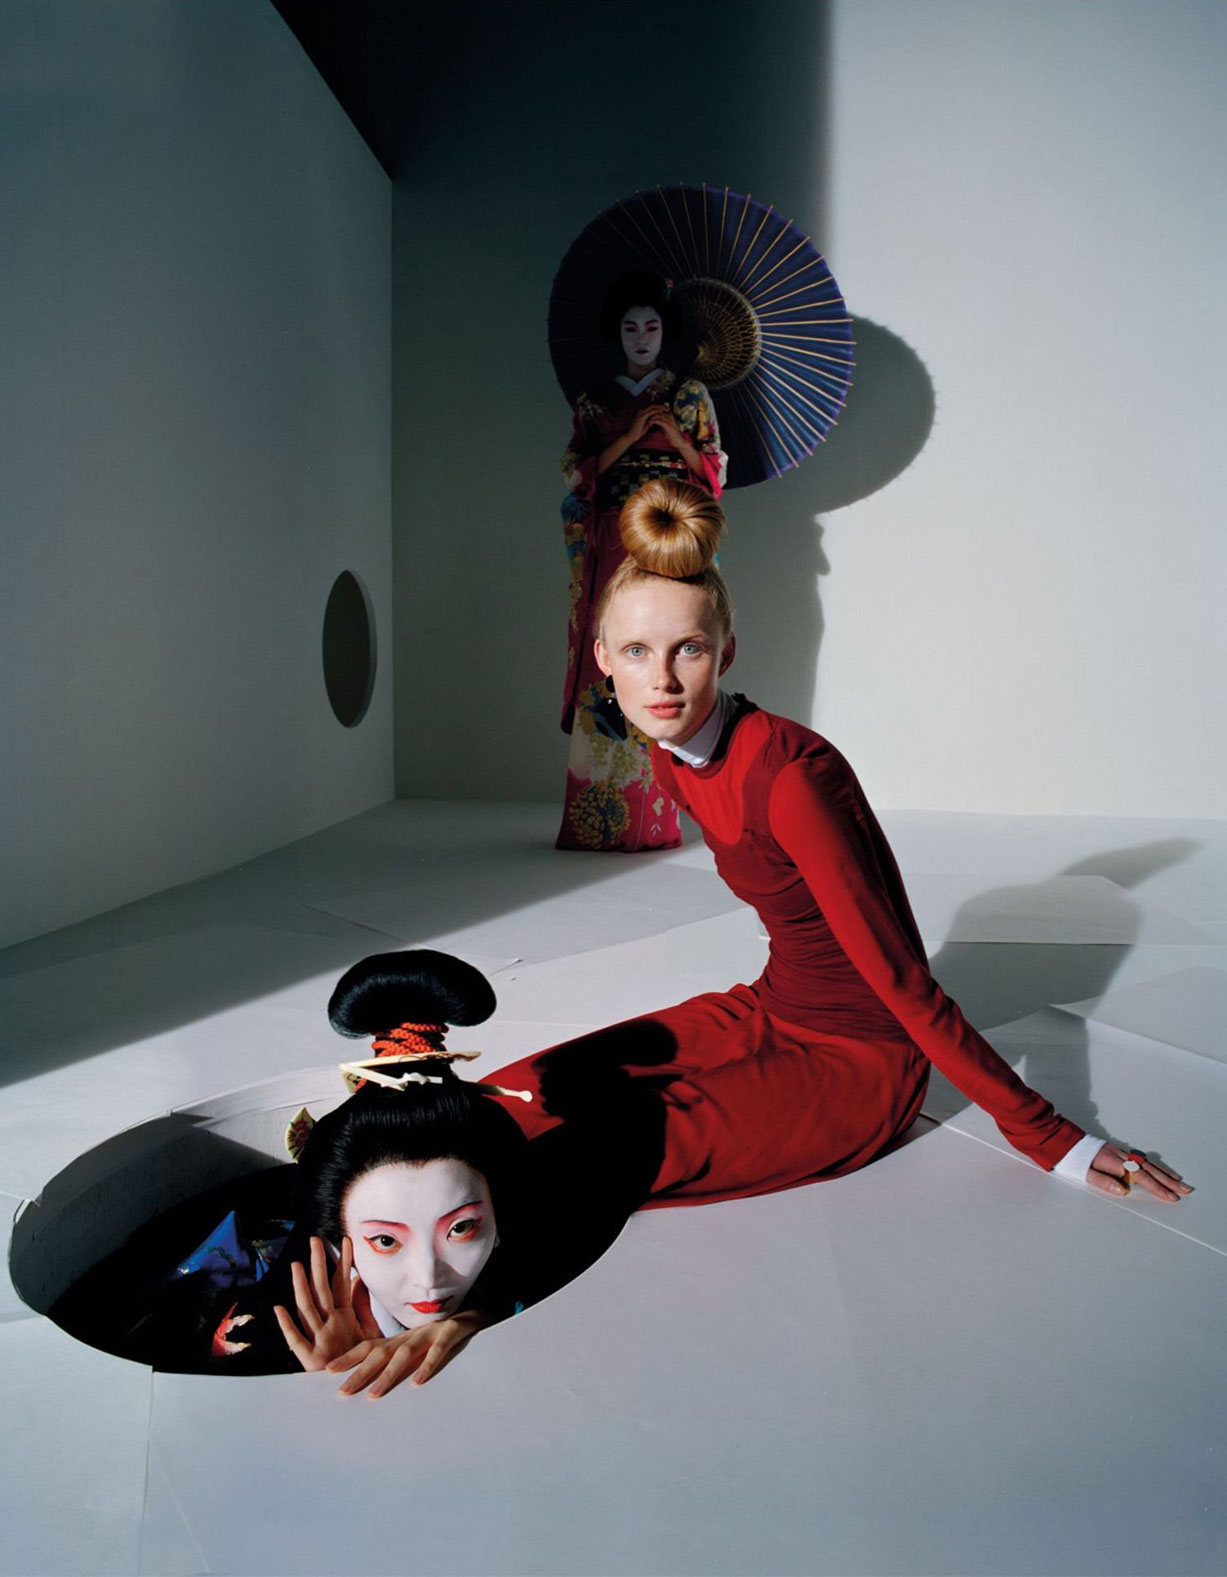 Художник зыбкого мира / An Artist of the Floating World by Tim Walker - Vogue UK december 2016